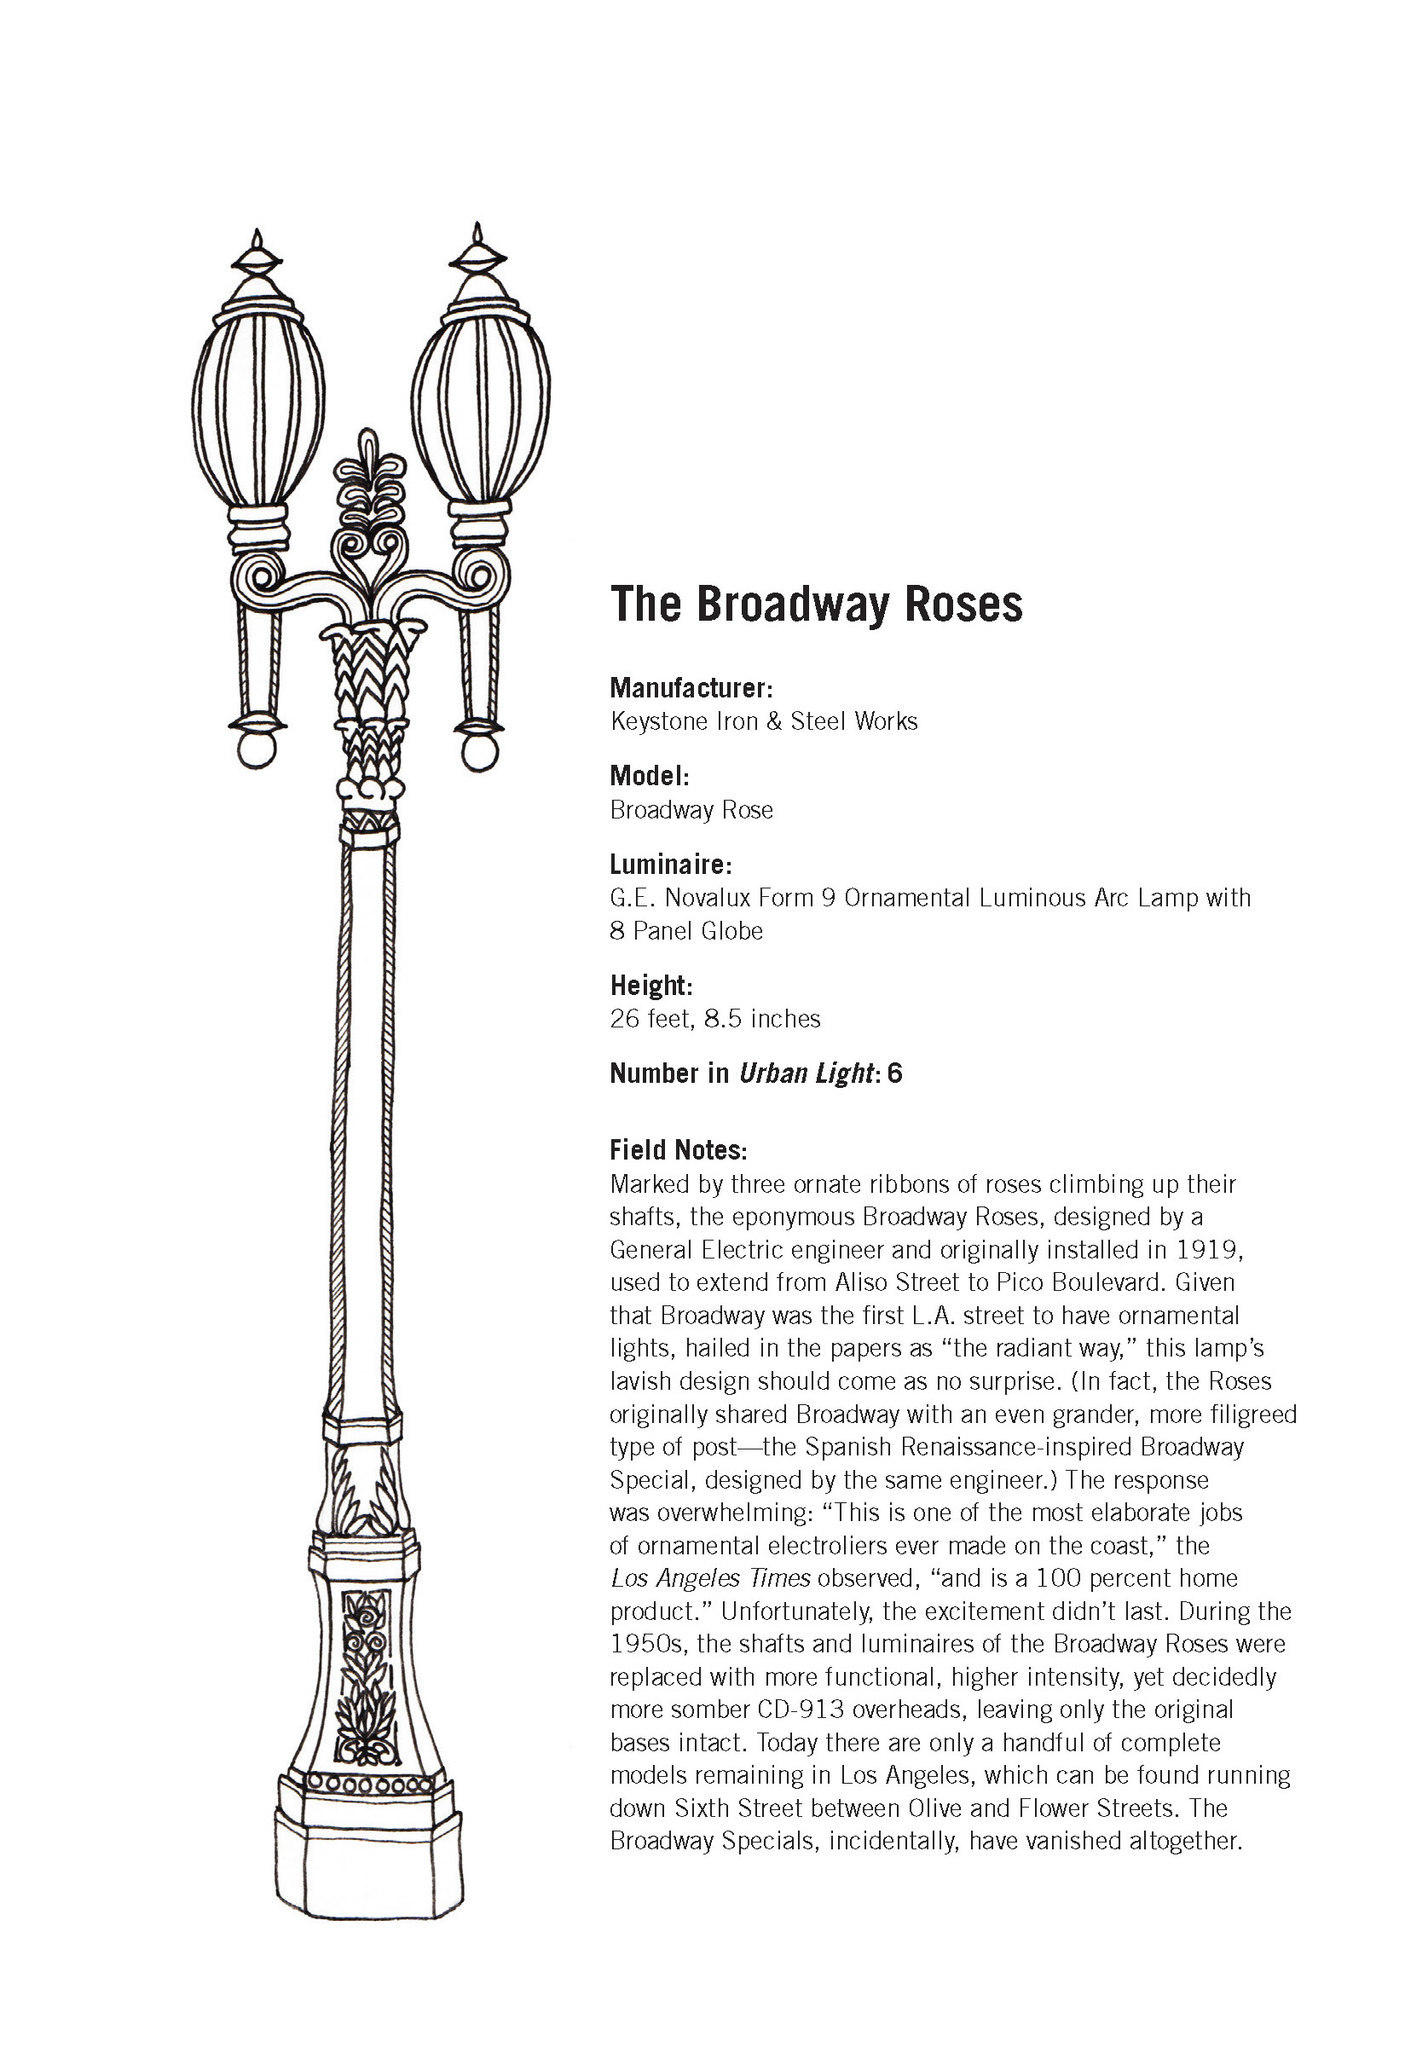 The Broadway Rose street lamp was one of Chris Burden's favorites.